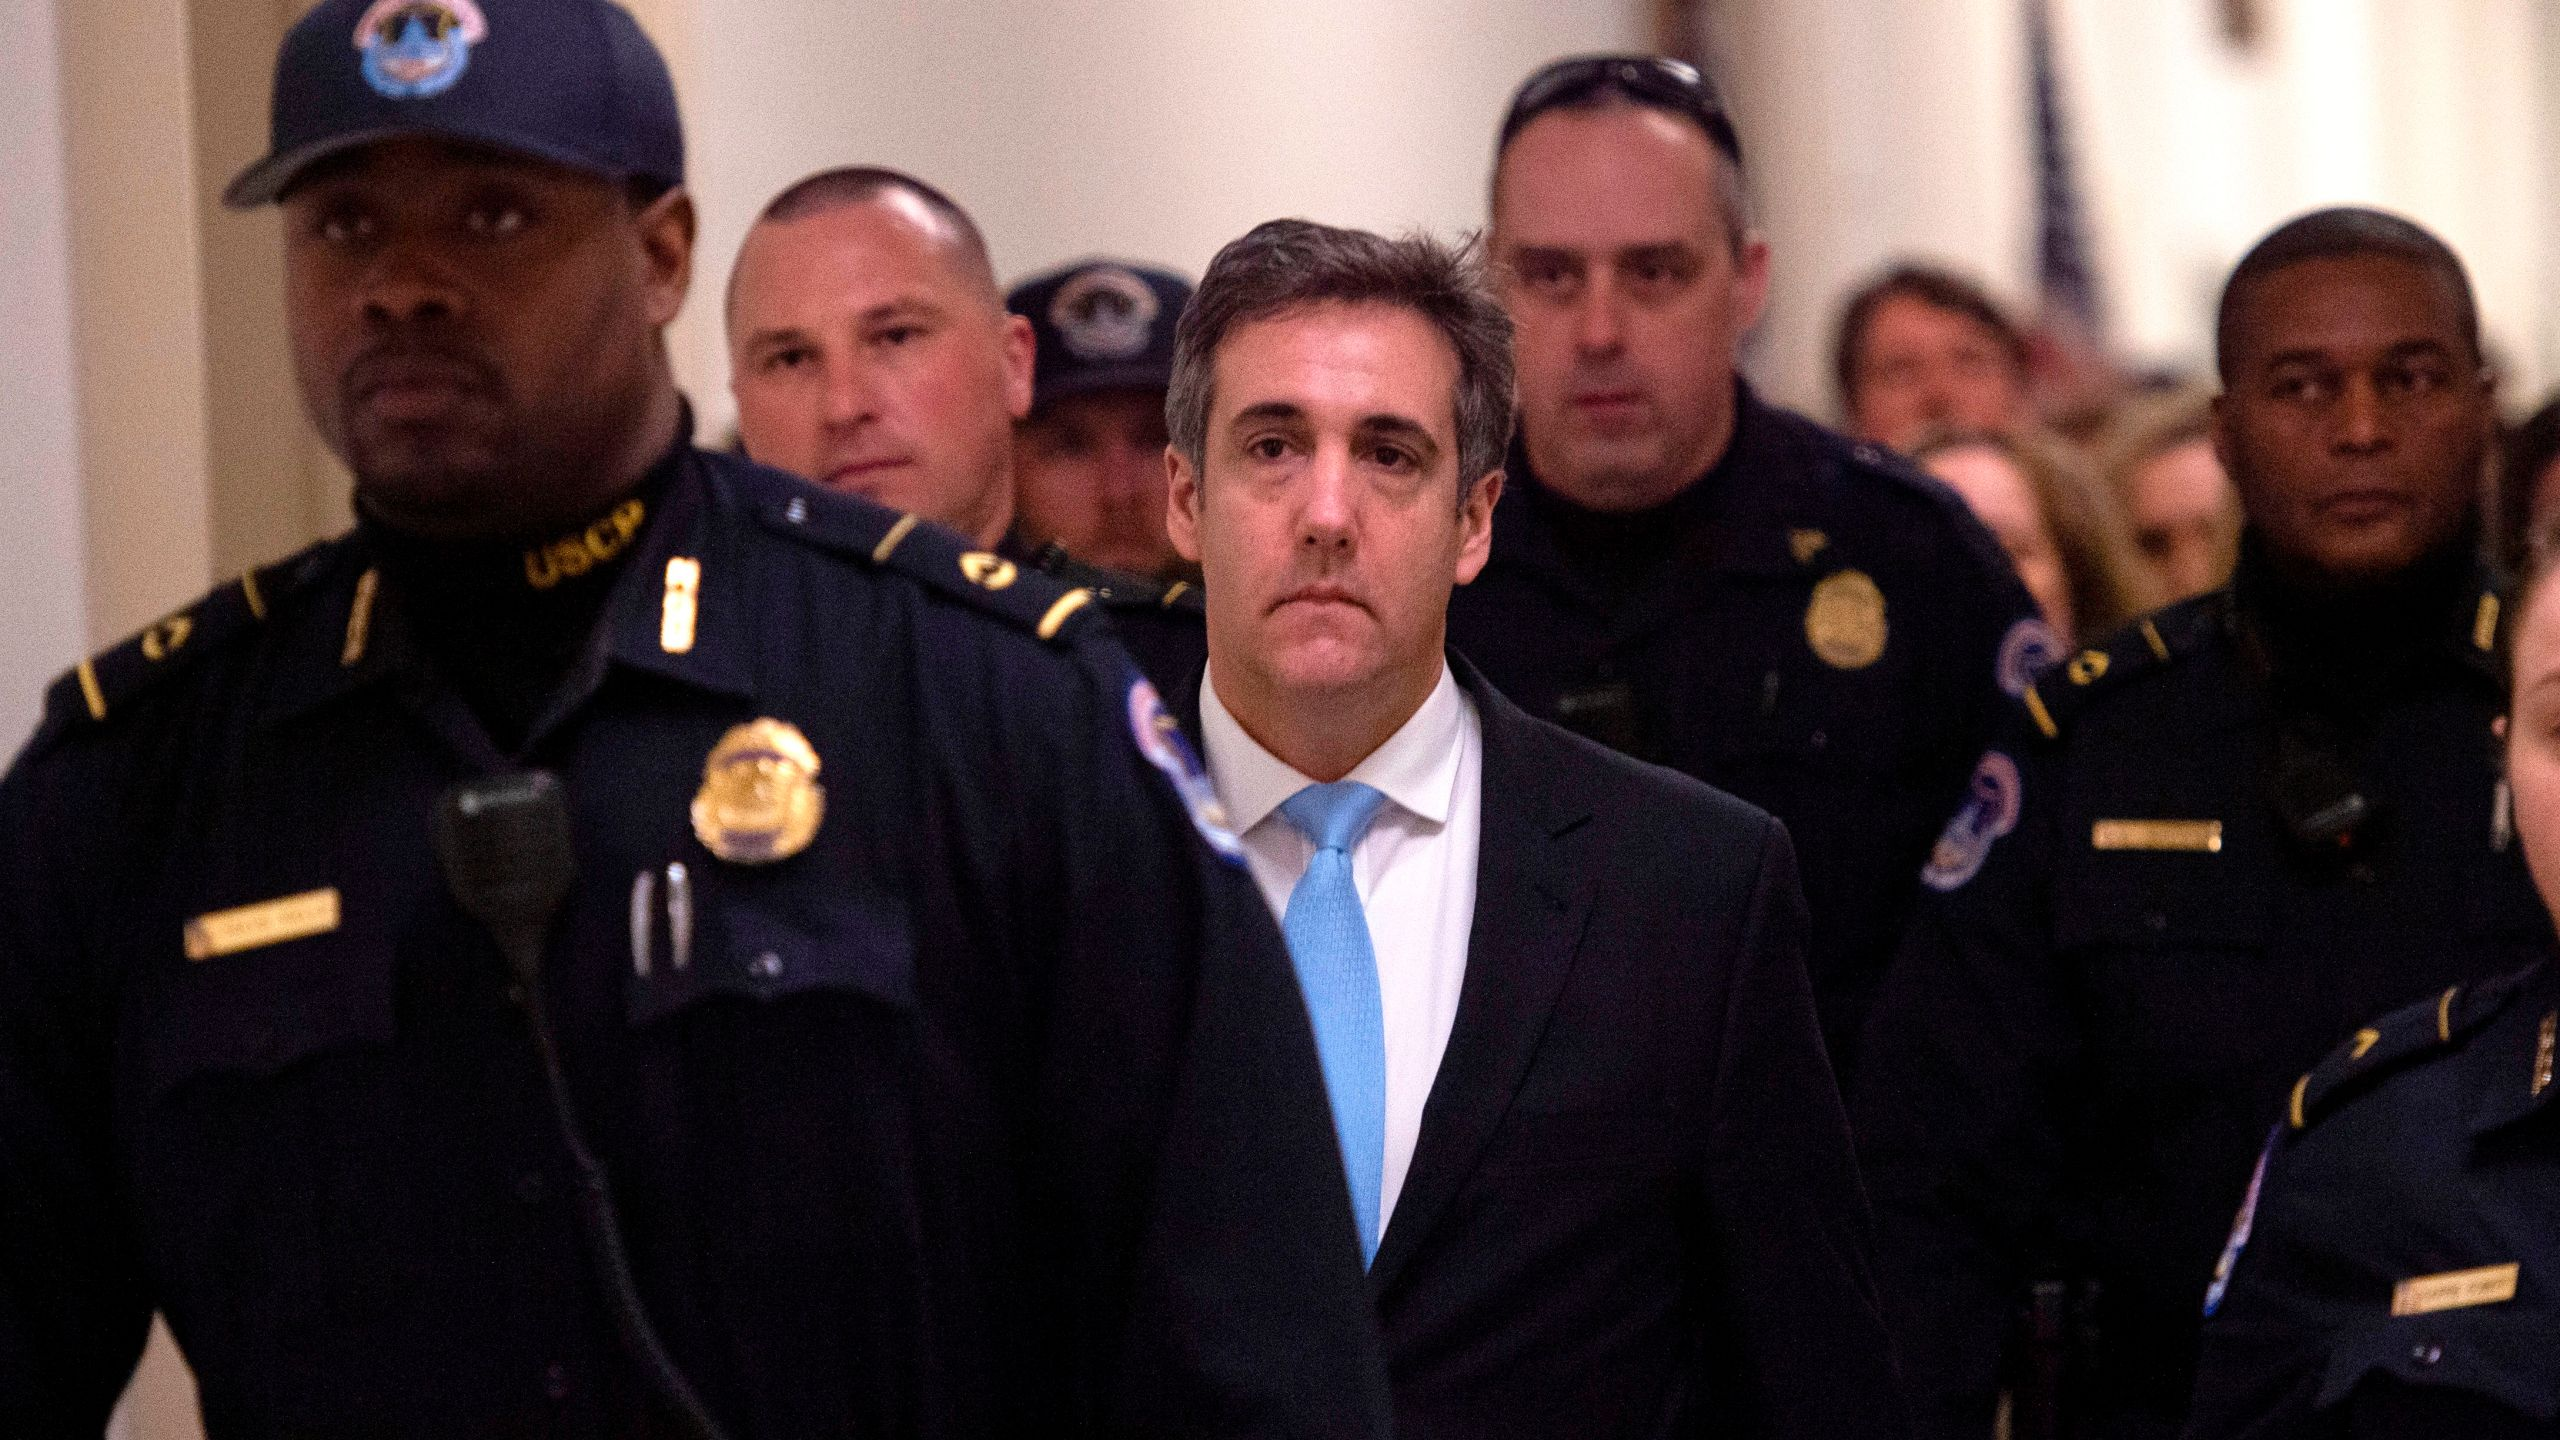 Michael Cohen leaves after testifying before the House Oversight and Reform Committee in the Rayburn House Office Building on Capitol Hill in Washington, DC on February 27, 2019. (Credit: ANDREW CABALLERO-REYNOLDS/AFP/Getty Images)